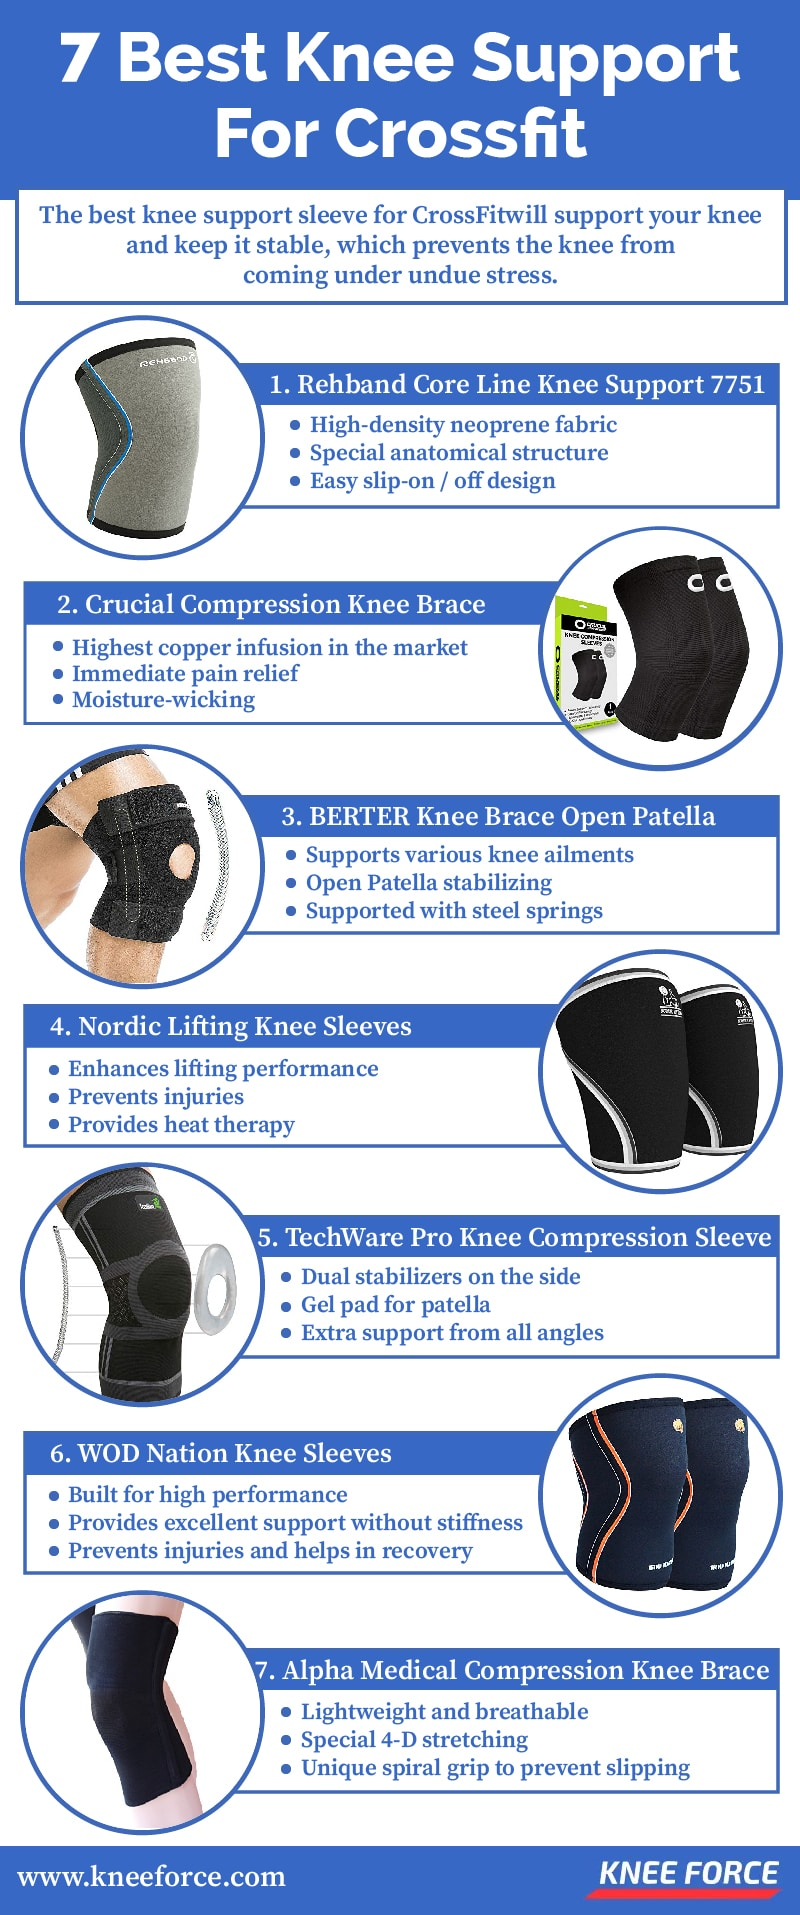 best knee support sleeve for crossfit will support you knee and keep it stable, which prevents the knee from coming under undue stress